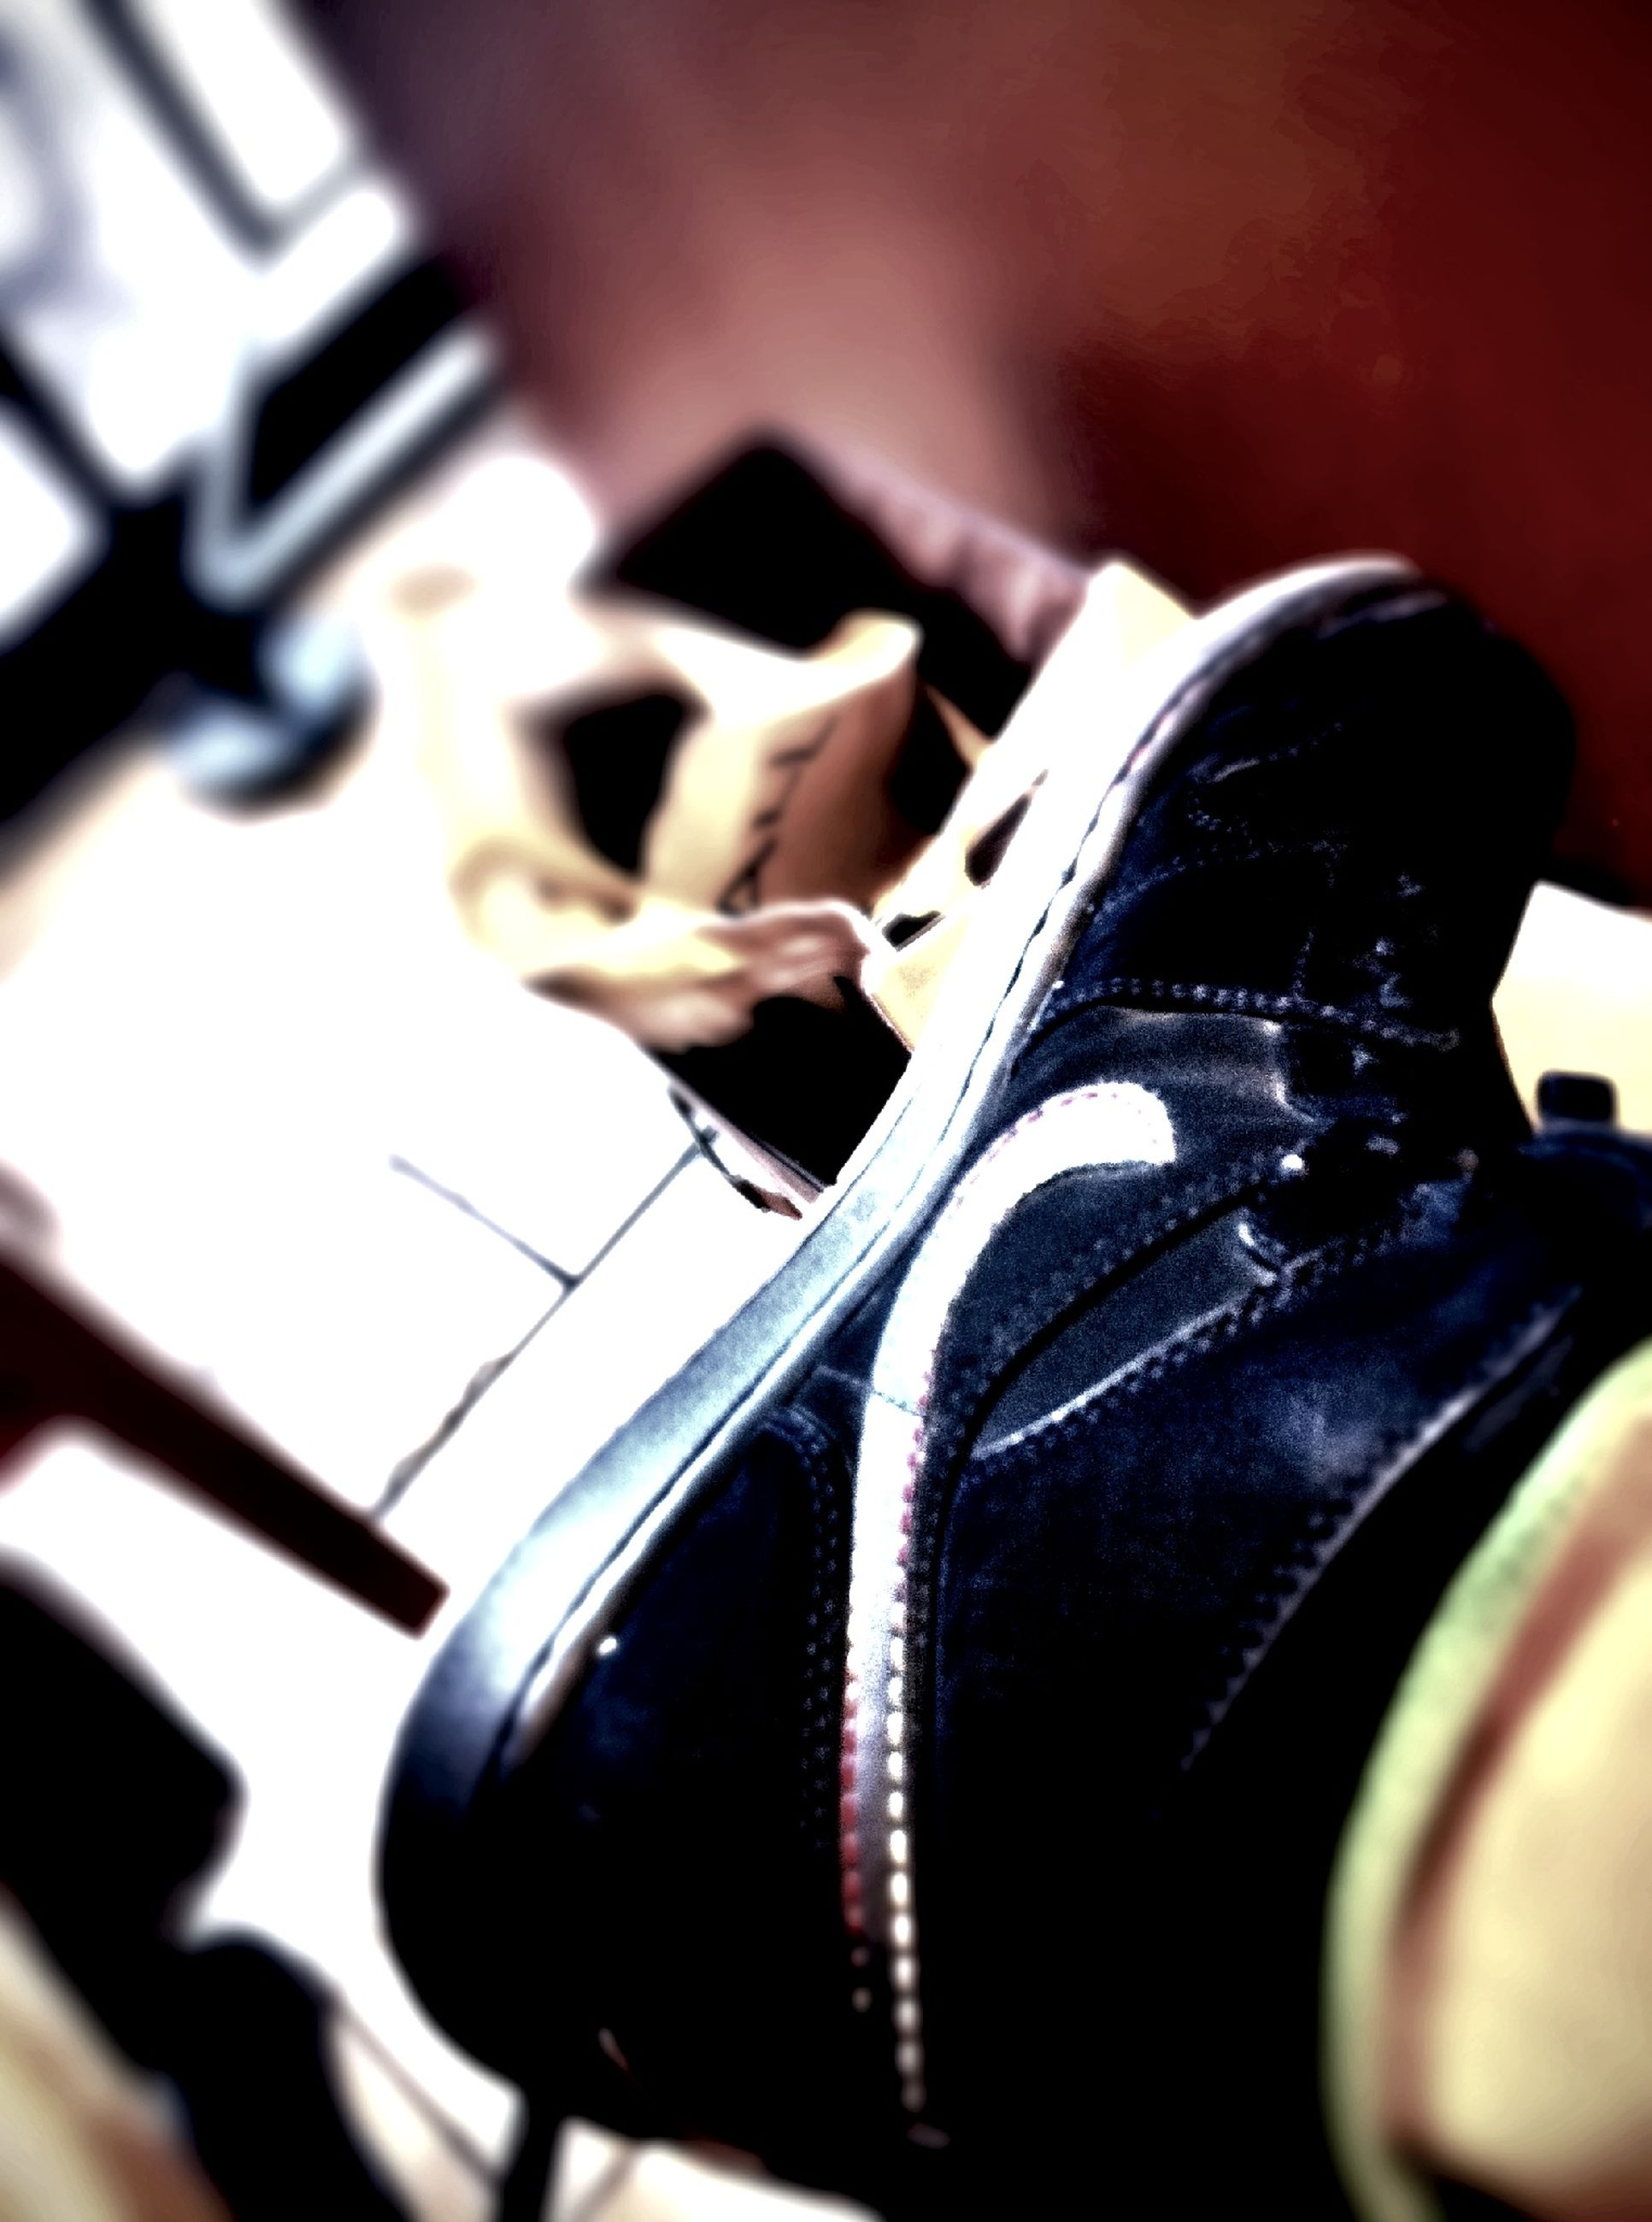 indoors, shoe, close-up, selective focus, focus on foreground, still life, footwear, music, low section, metal, high angle view, person, black color, no people, part of, day, sunlight, fashion, technology, musical instrument